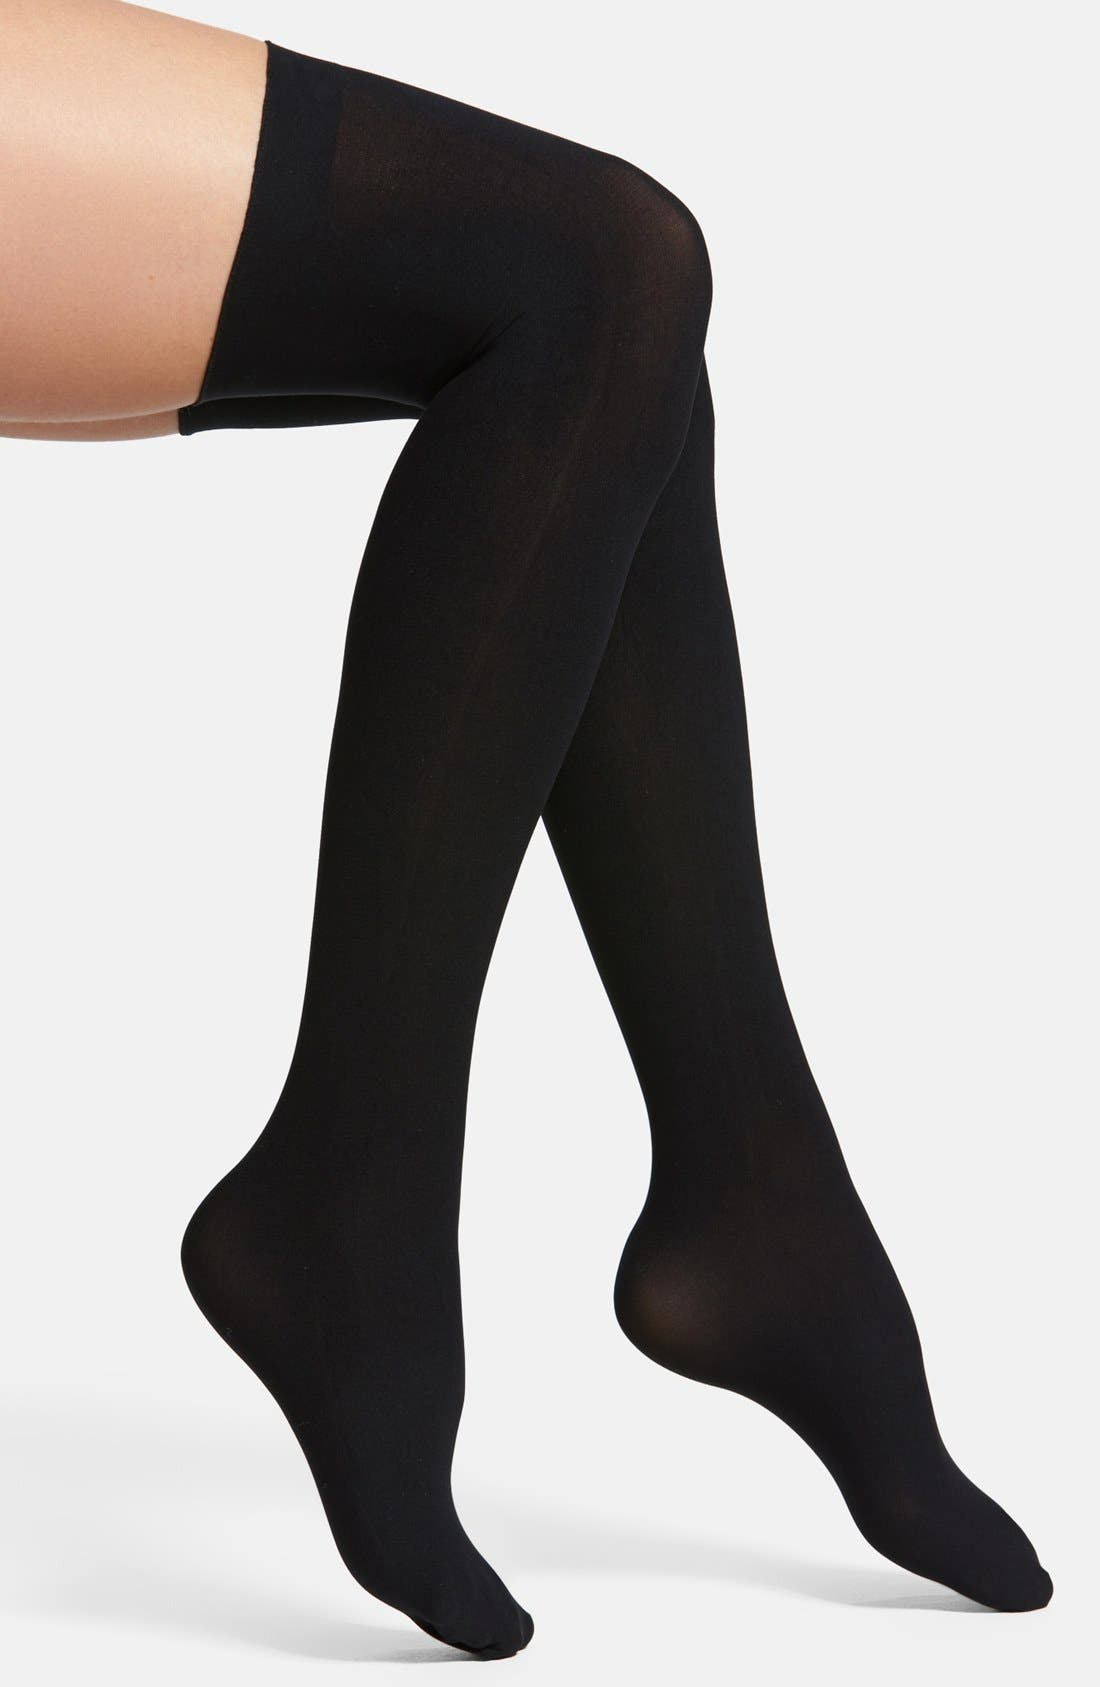 Up All Night Thigh High Socks,                         Main,                         color, BLACK